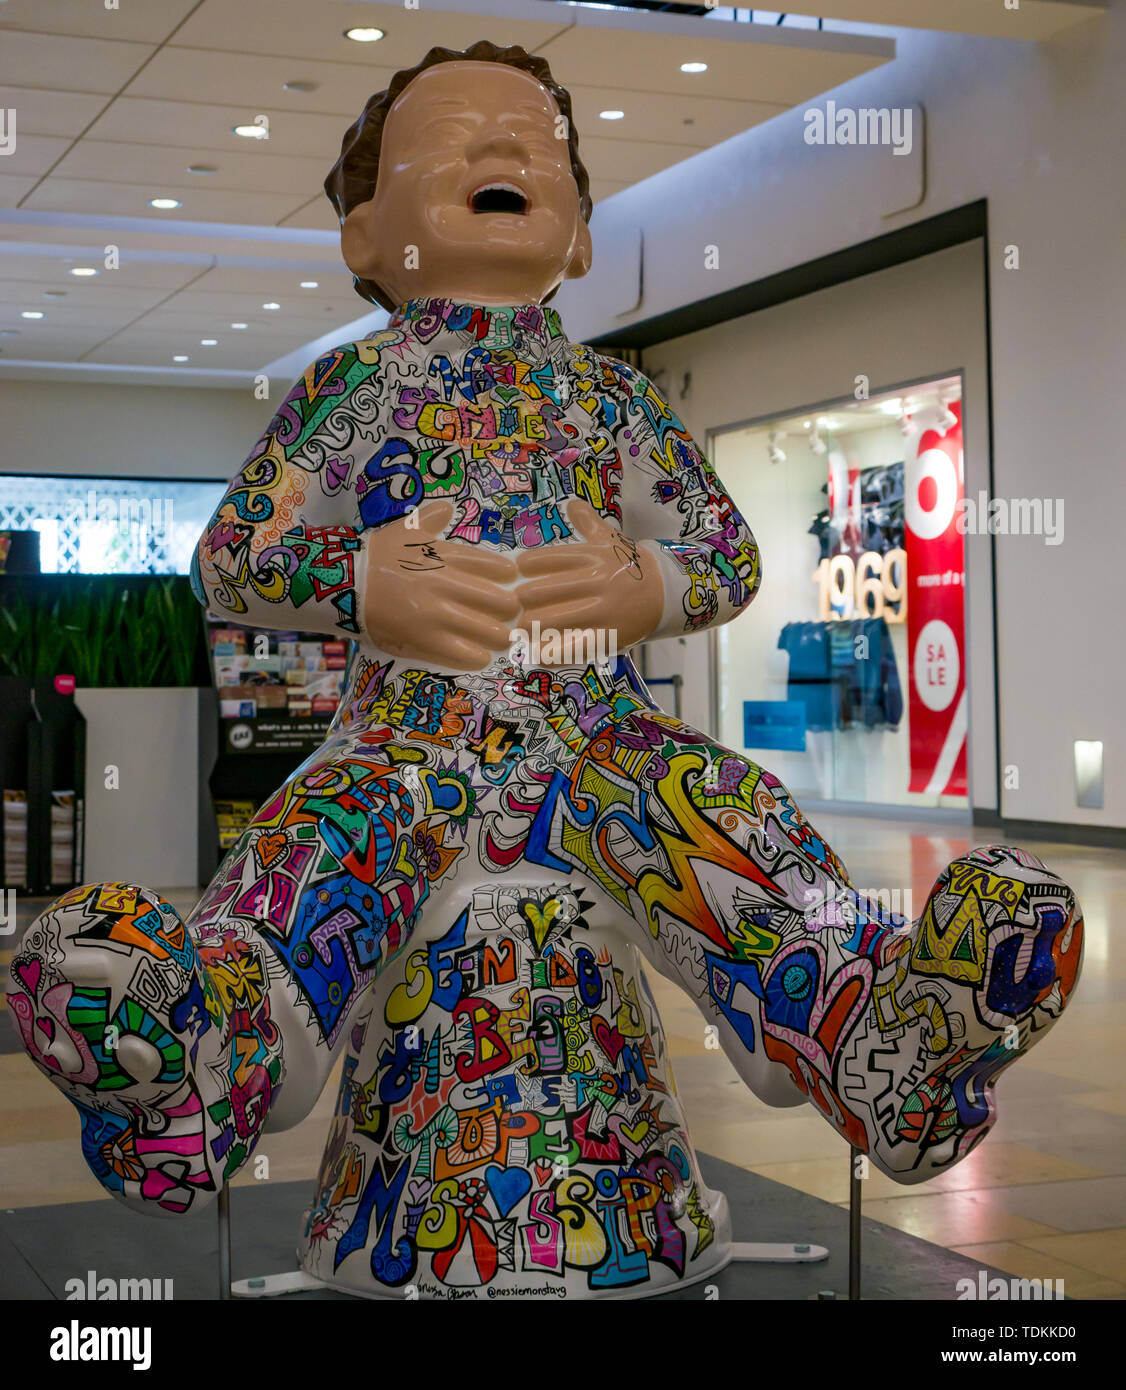 Leith, Edinburgh, Scotland, United Kingdom, 17 June 2019. Oor Wullie's Big Bucket Trail: An art trail of 200 Oor Wullie sculptures appear in Scottish cities in a mass arts event that lasts until August 30th. Oor Wullie is an iconic Scottish cartoon character from the Sunday Post newspaper. The sculptures will be auctioned to raise money for Scotland's children's hospital charities. There are 5 in the Leith area, and 60 in Edinburgh altogether. The Proclaimers, Craig Reid, at Ocean Terminal by Vanessa Gibson Stock Photo